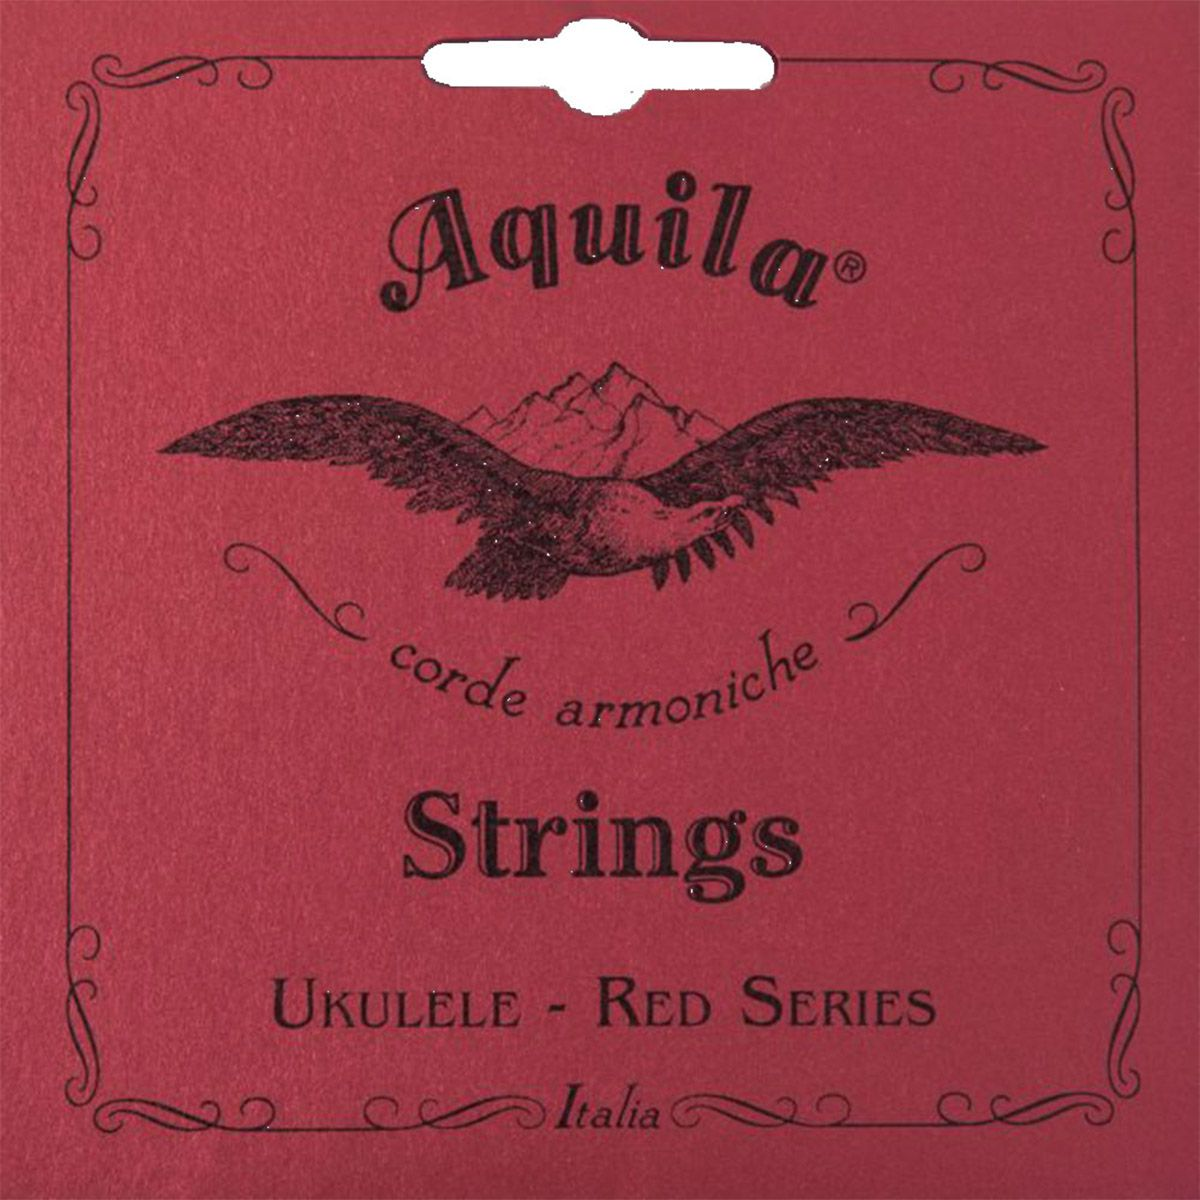 Encordoamento Aquila 87U Red Series High G Ukulele Tenor